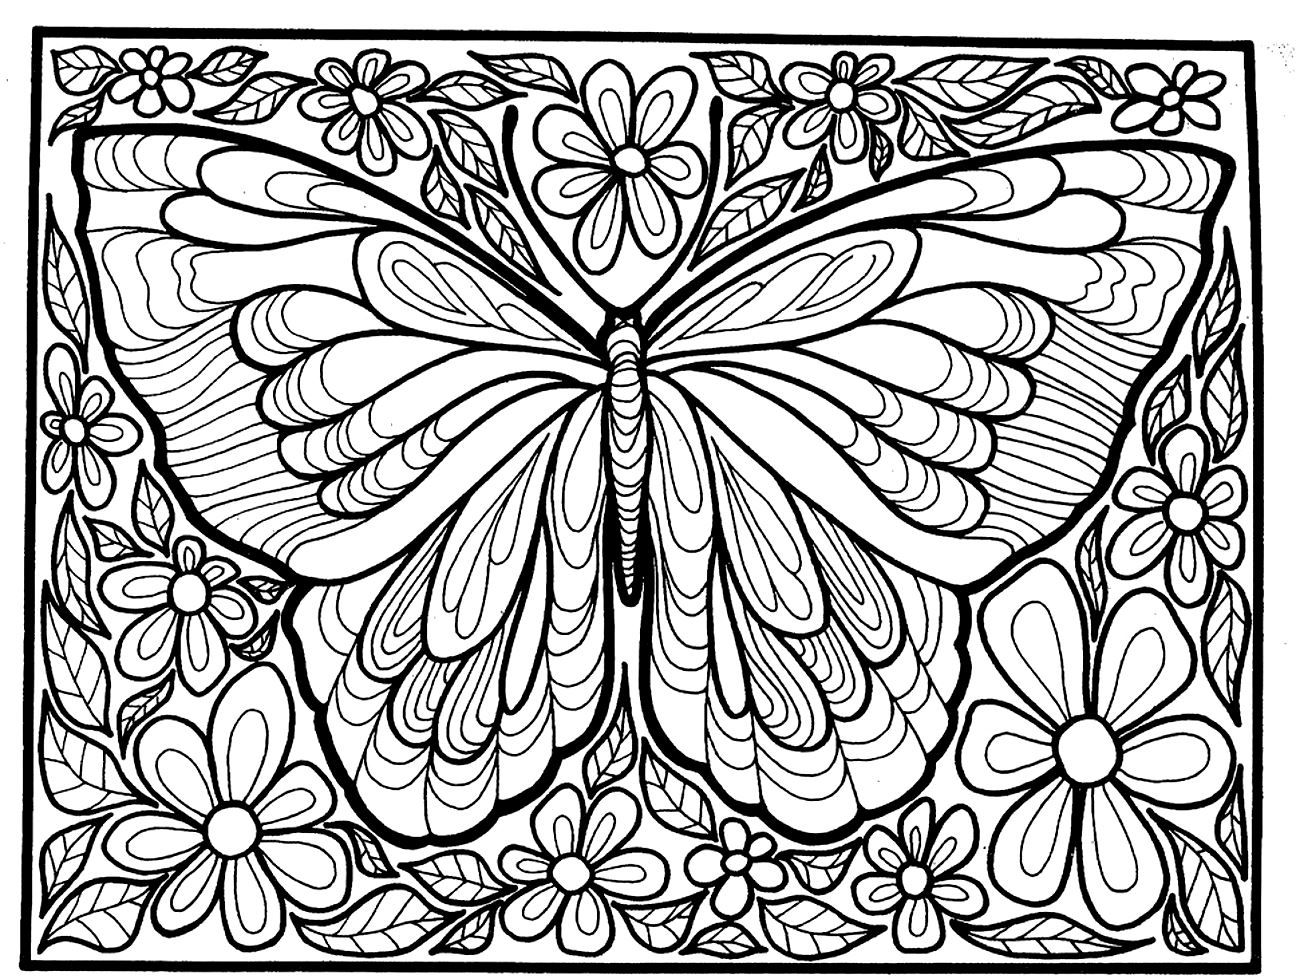 To print this free coloring page coloring adult difficult big butterfly